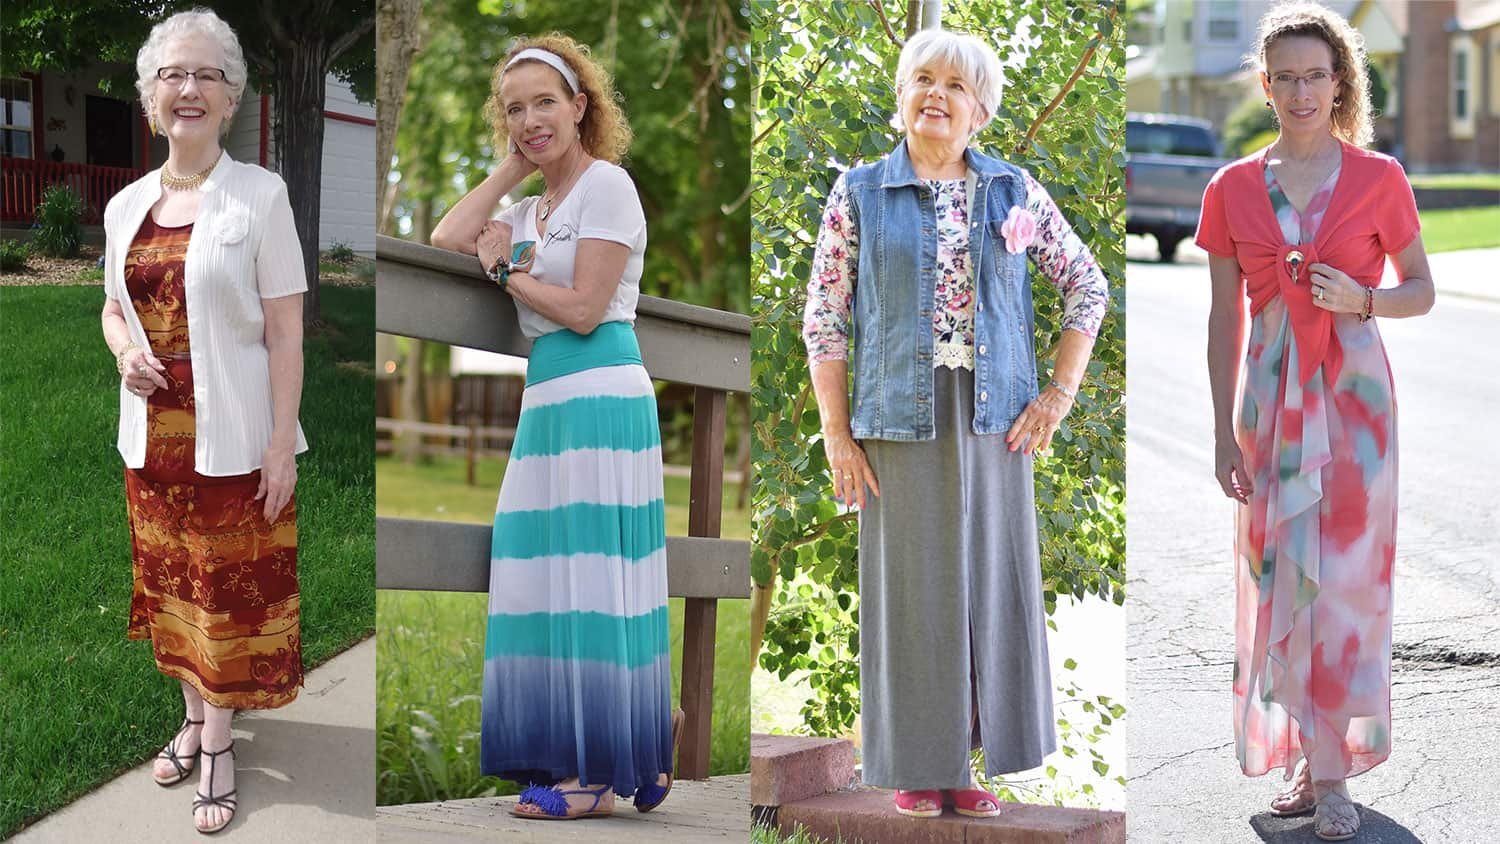 Maxi Dresses and Summer Fashion for Women Over 4  Sixty and Me